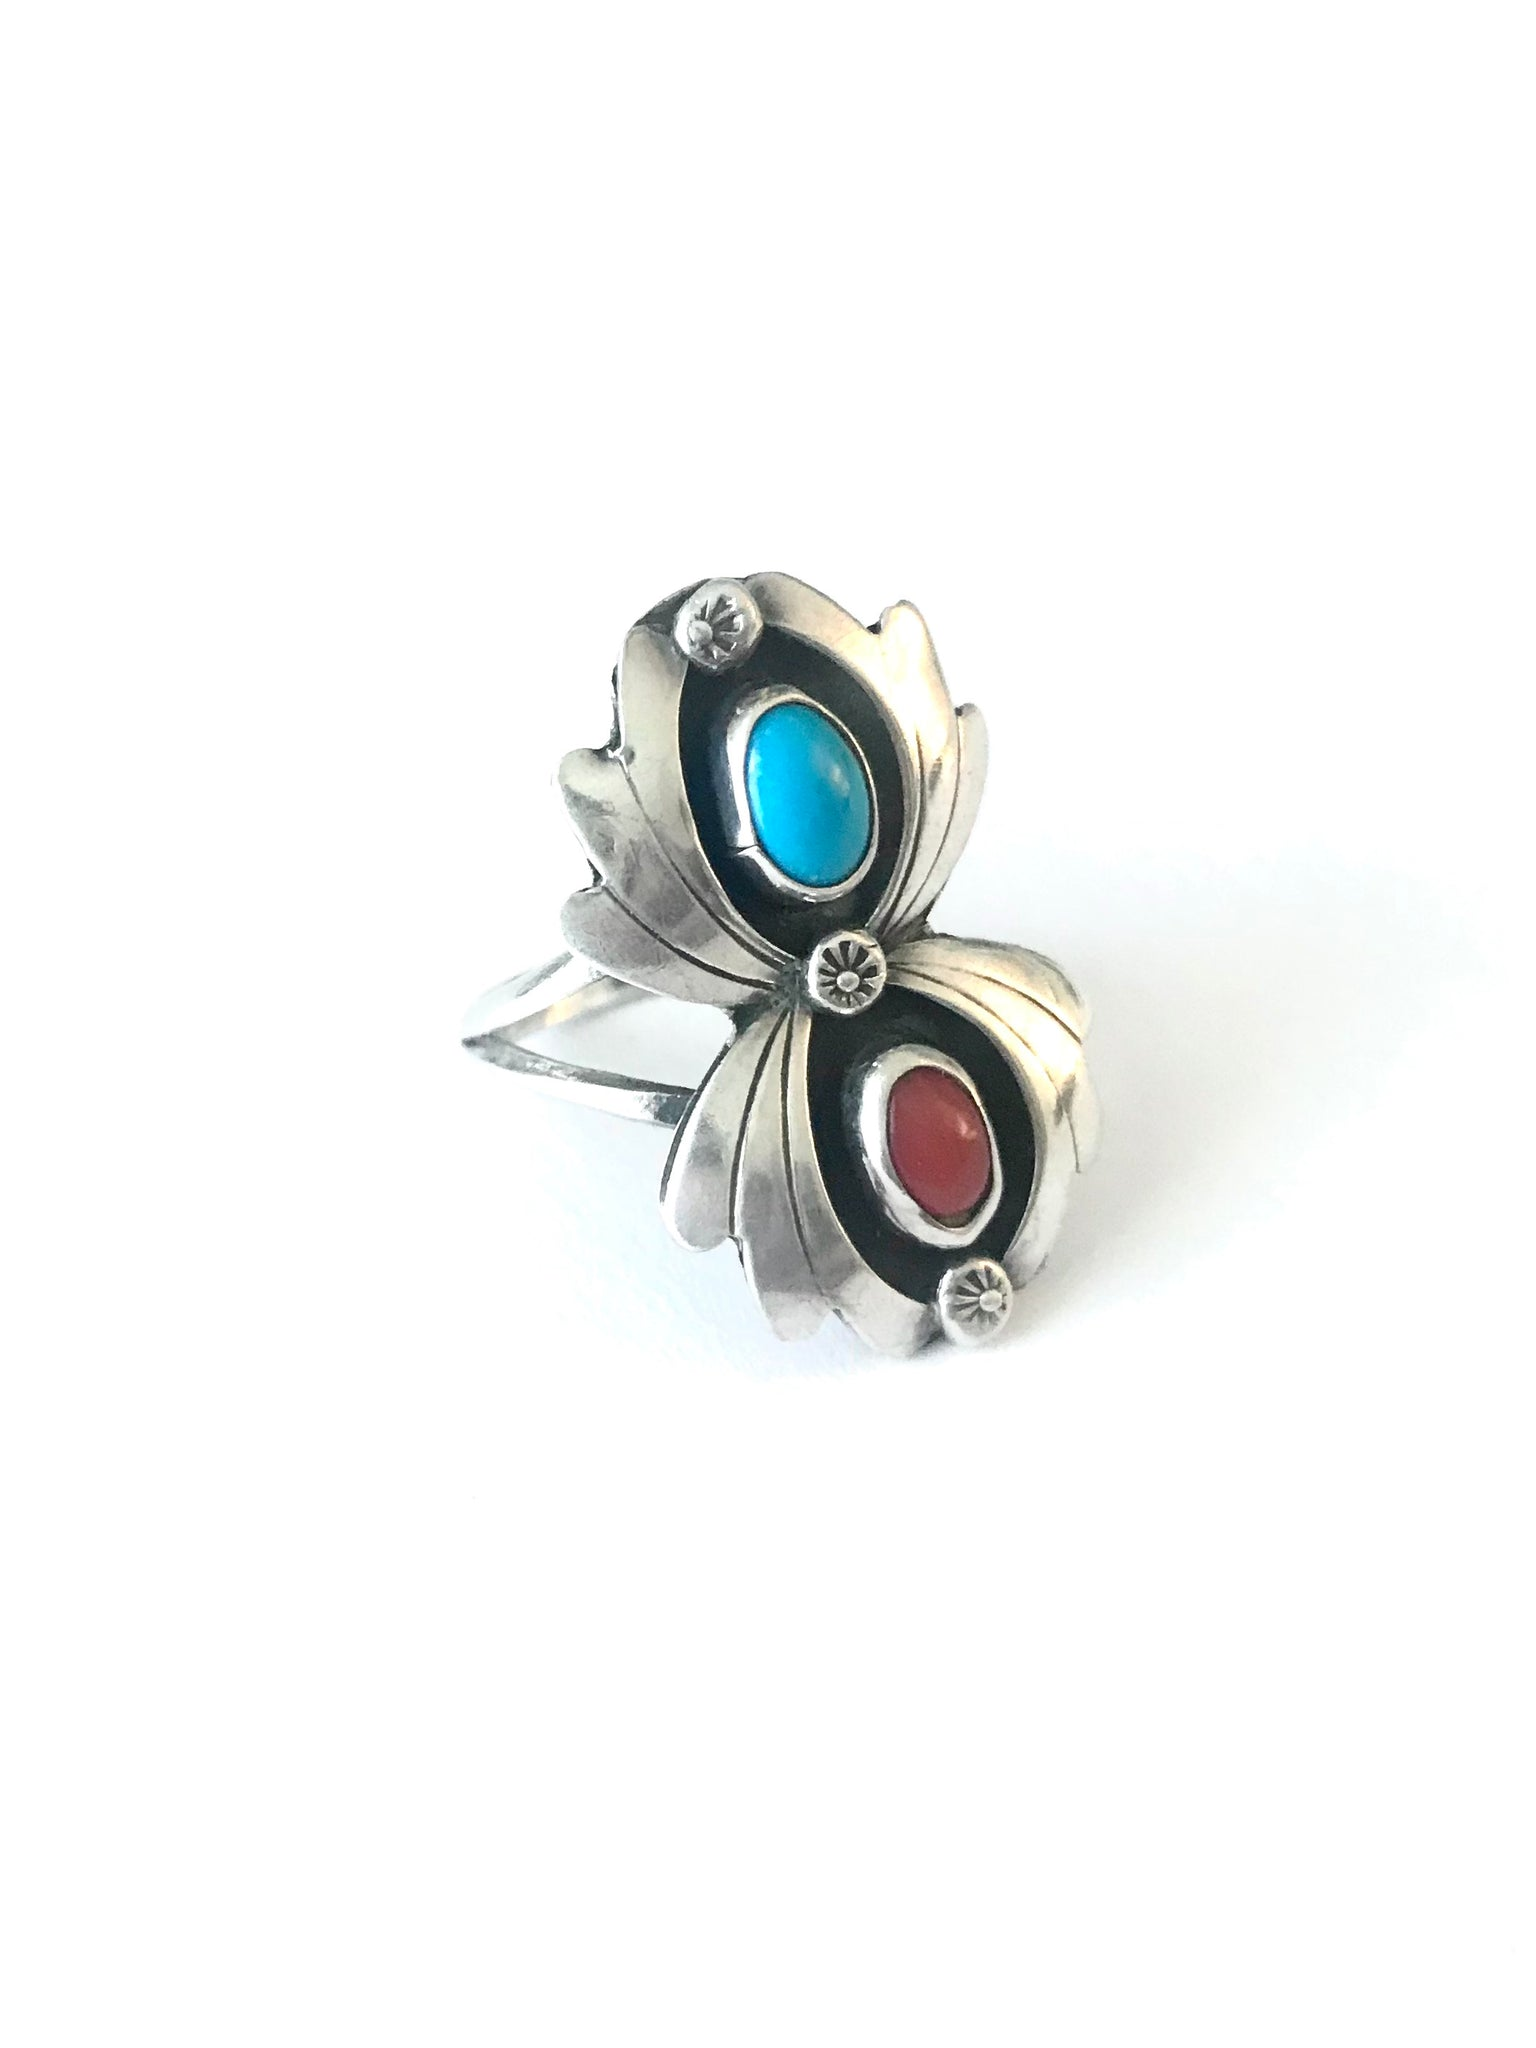 Turquoise and Coral ring, size 6 1/2